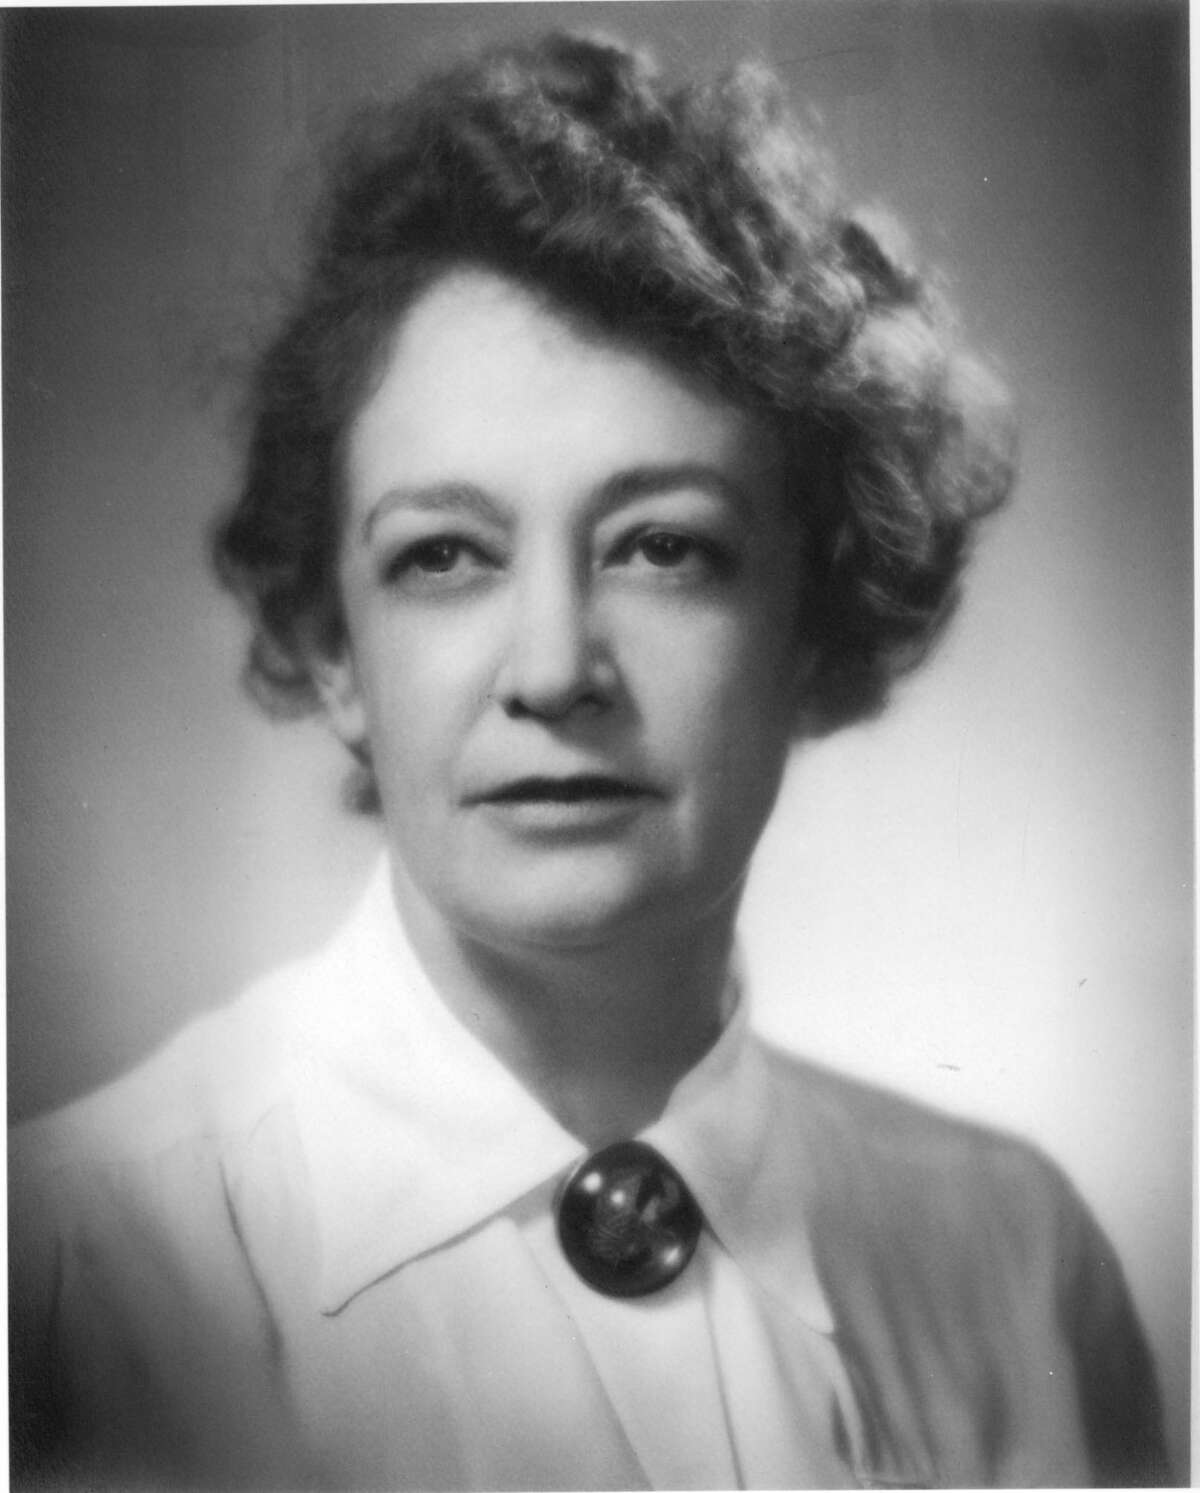 Dr. Ray K. Daily, HISD board member and physician. for editorial obit HOUCHRON CAPTION (05/23/2005) SECMETRO: CIVIC PIONEER: Dr. Ray Daily, a physician and community leader, left a mark on Houston that can be seen 30 years after her death.